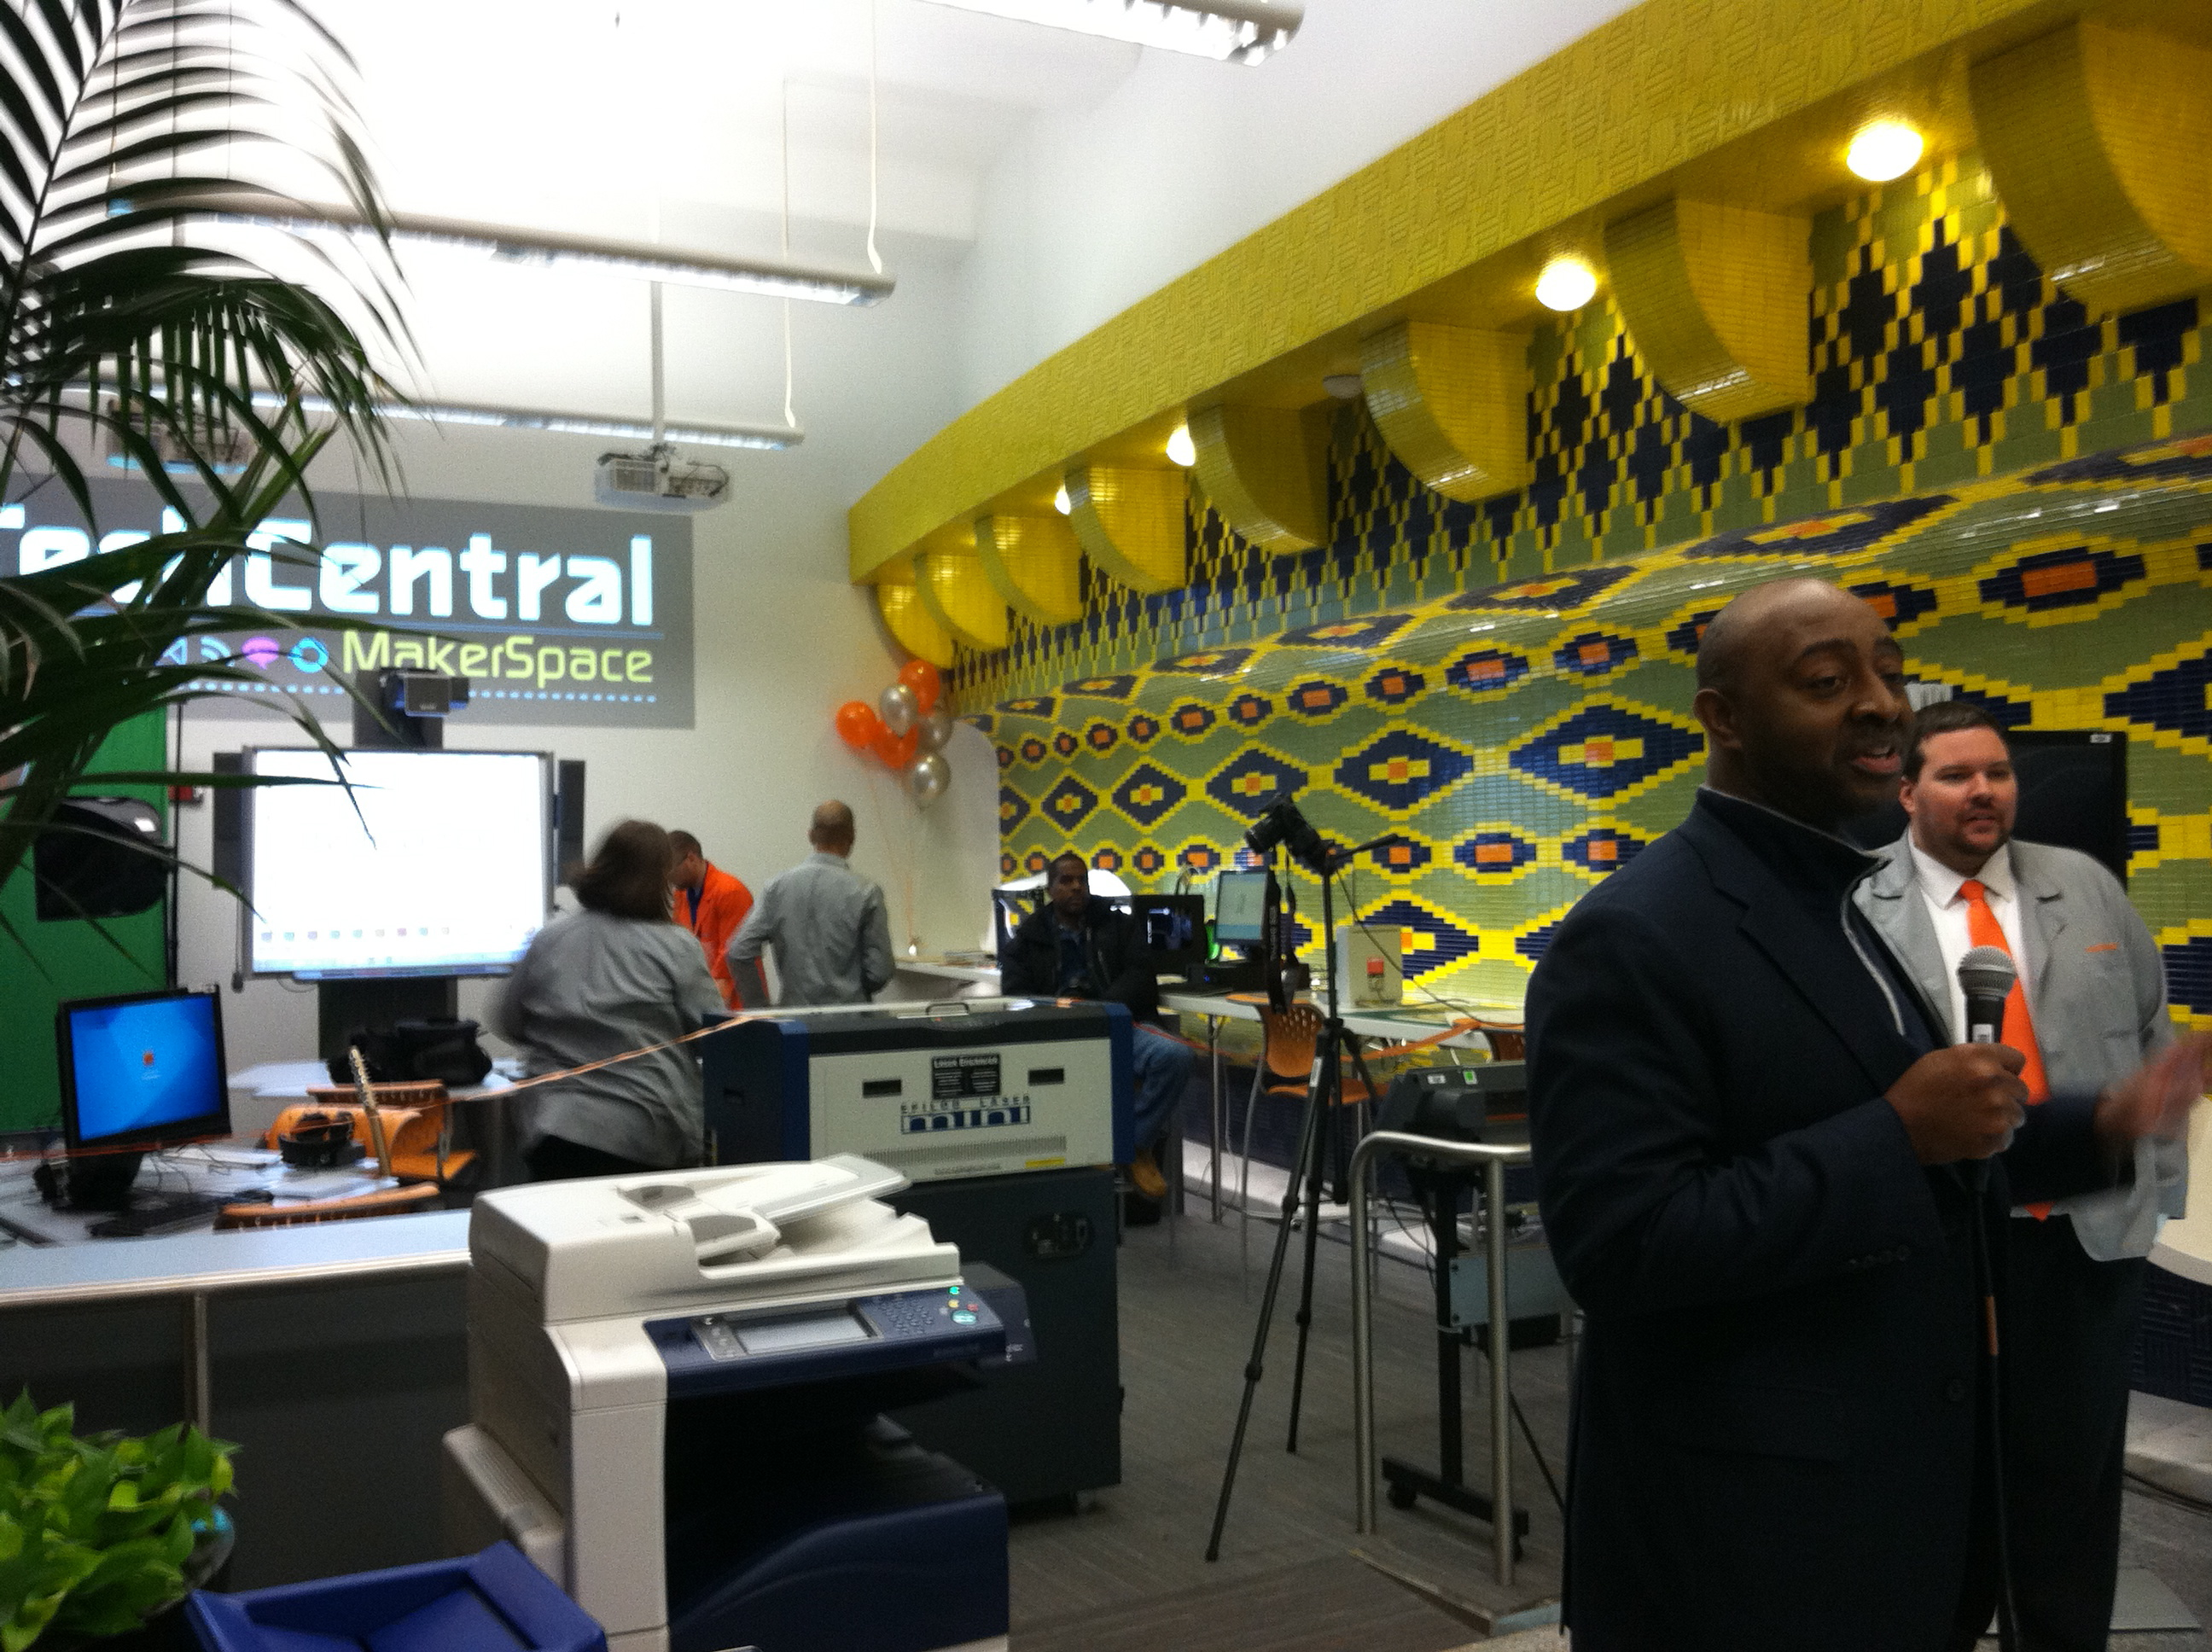 Cleveland S Techcentral Makerspace Grand Opening